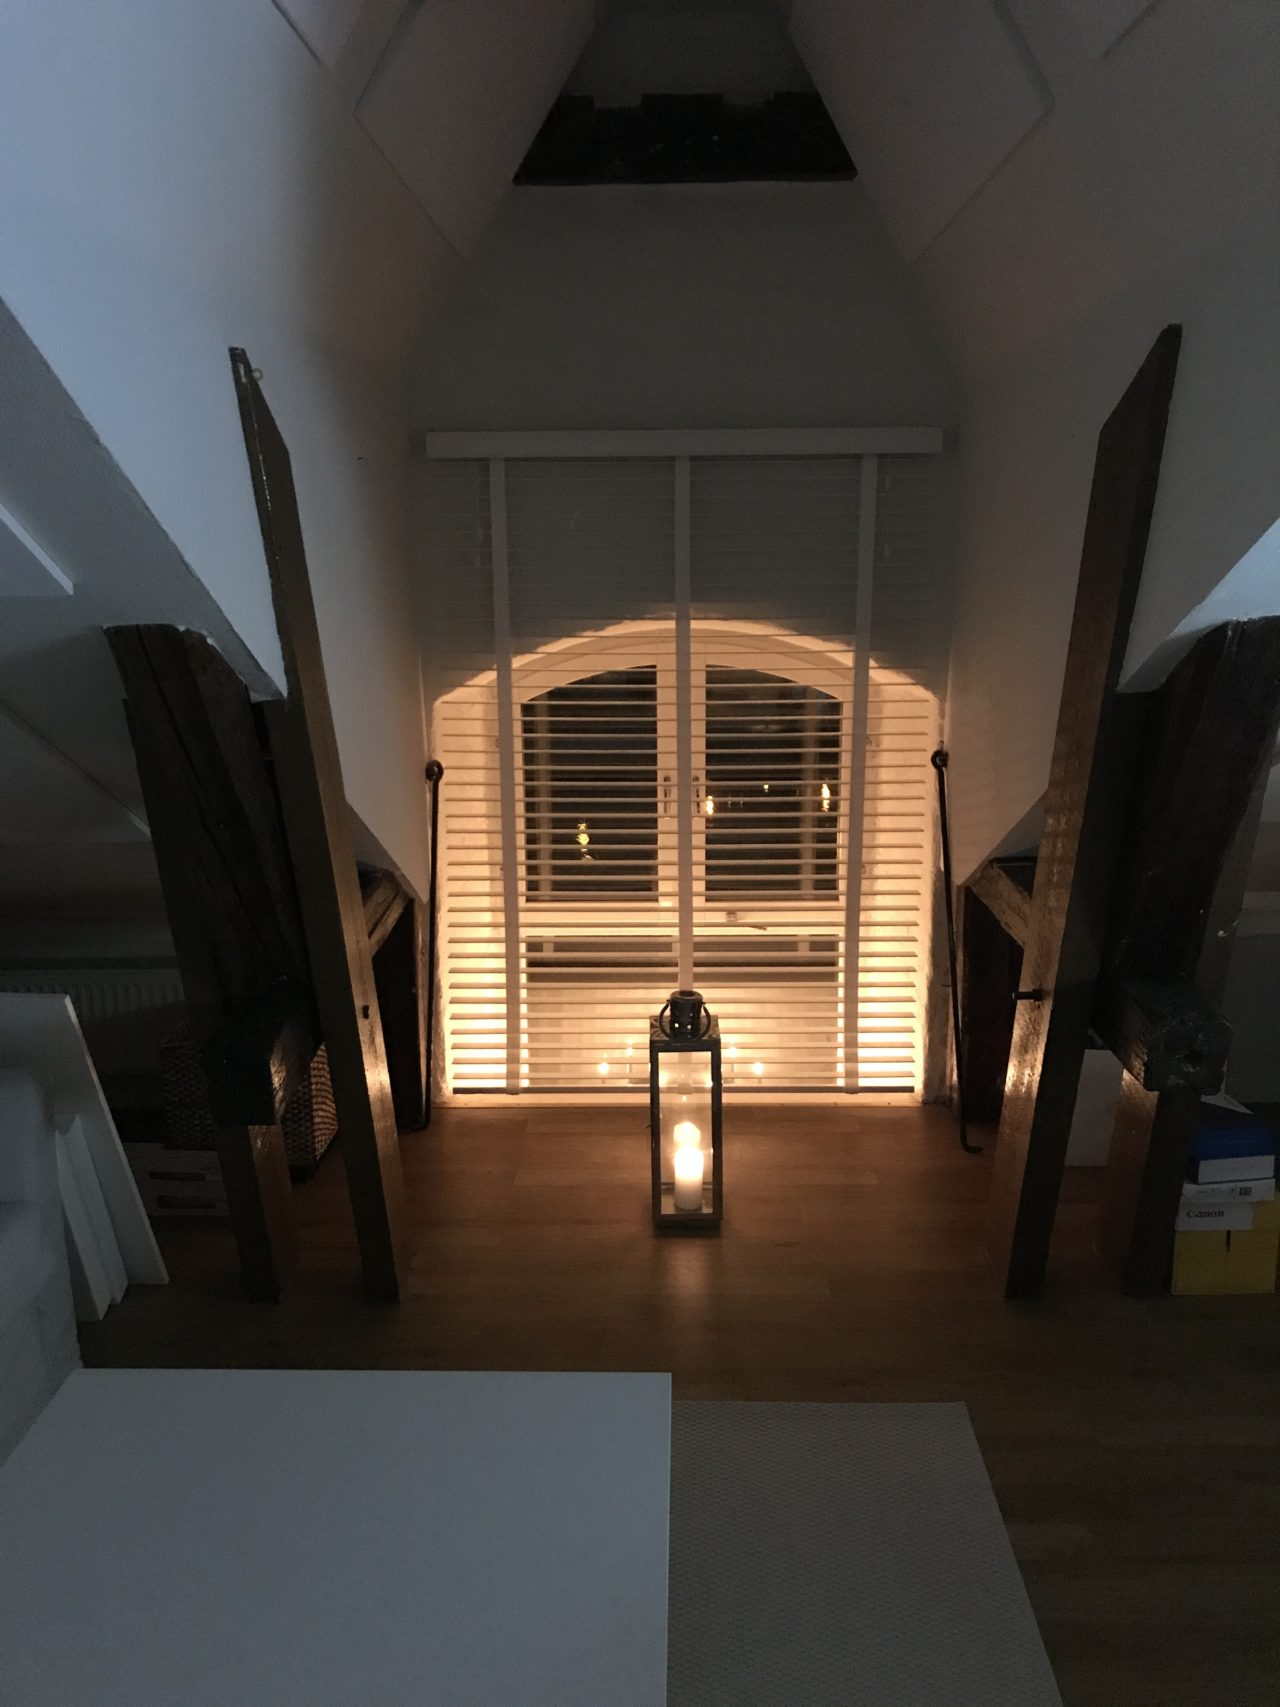 Cozy Nook With Candle Lantern By The Window